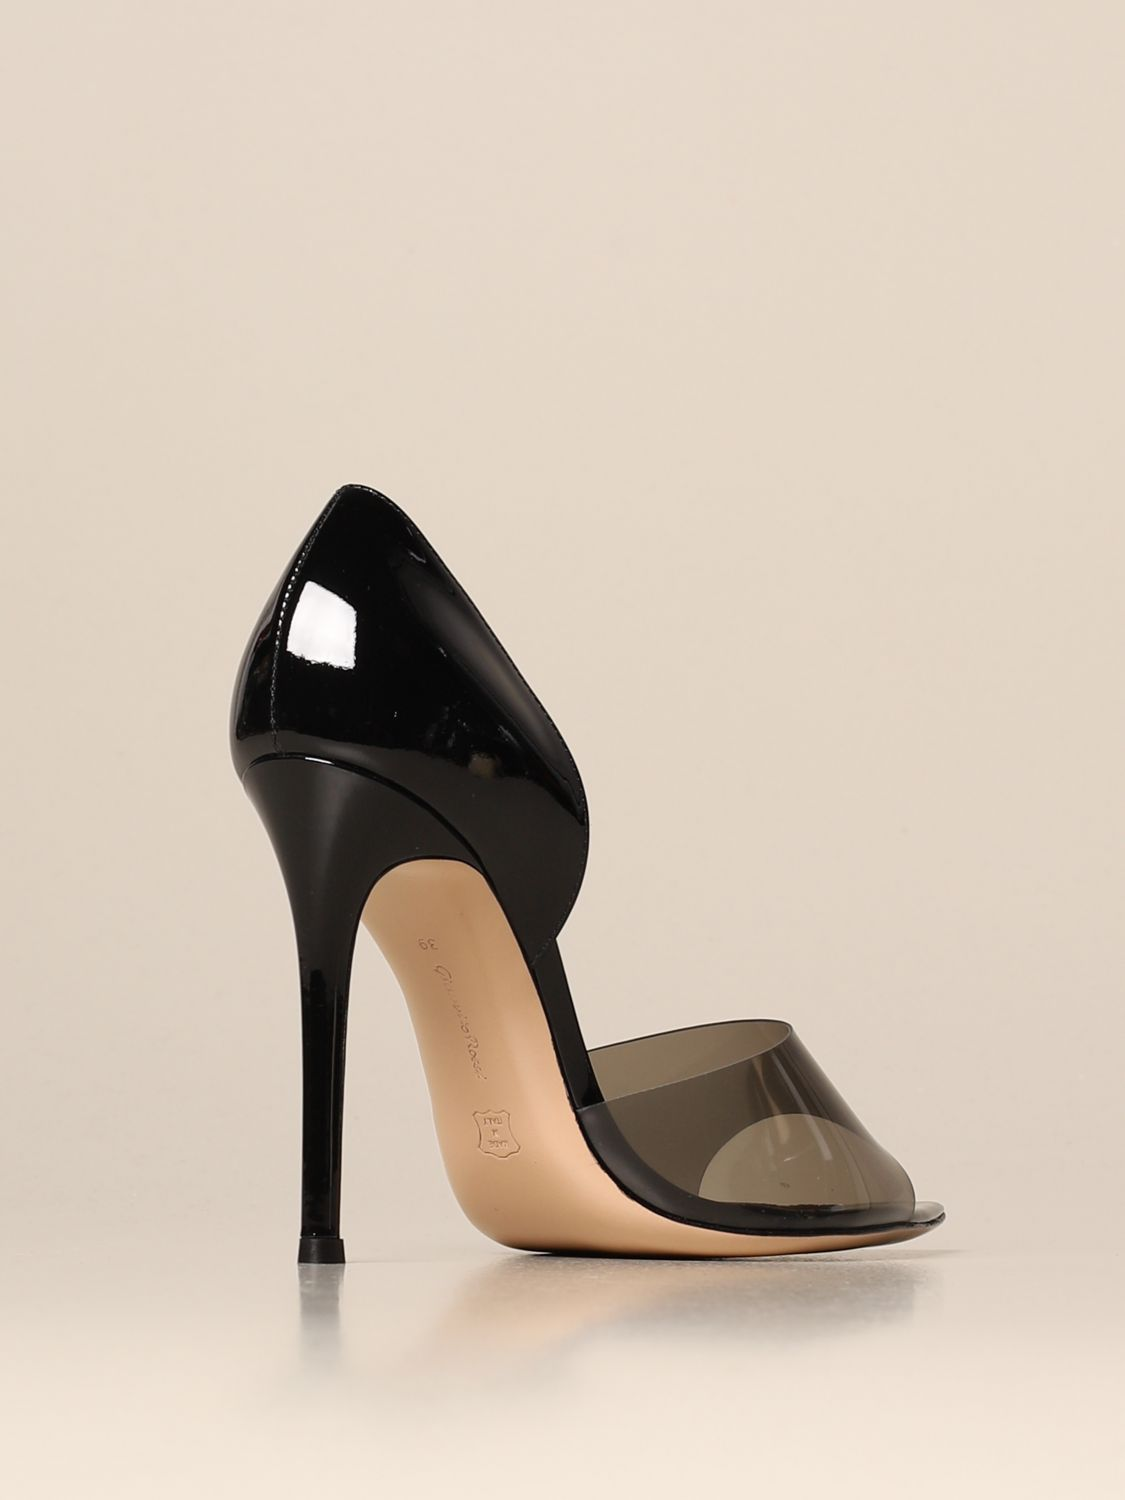 Chaussures à talons Gianvito Rossi: Chaussures à talons femme Gianvito Rossi noir 3